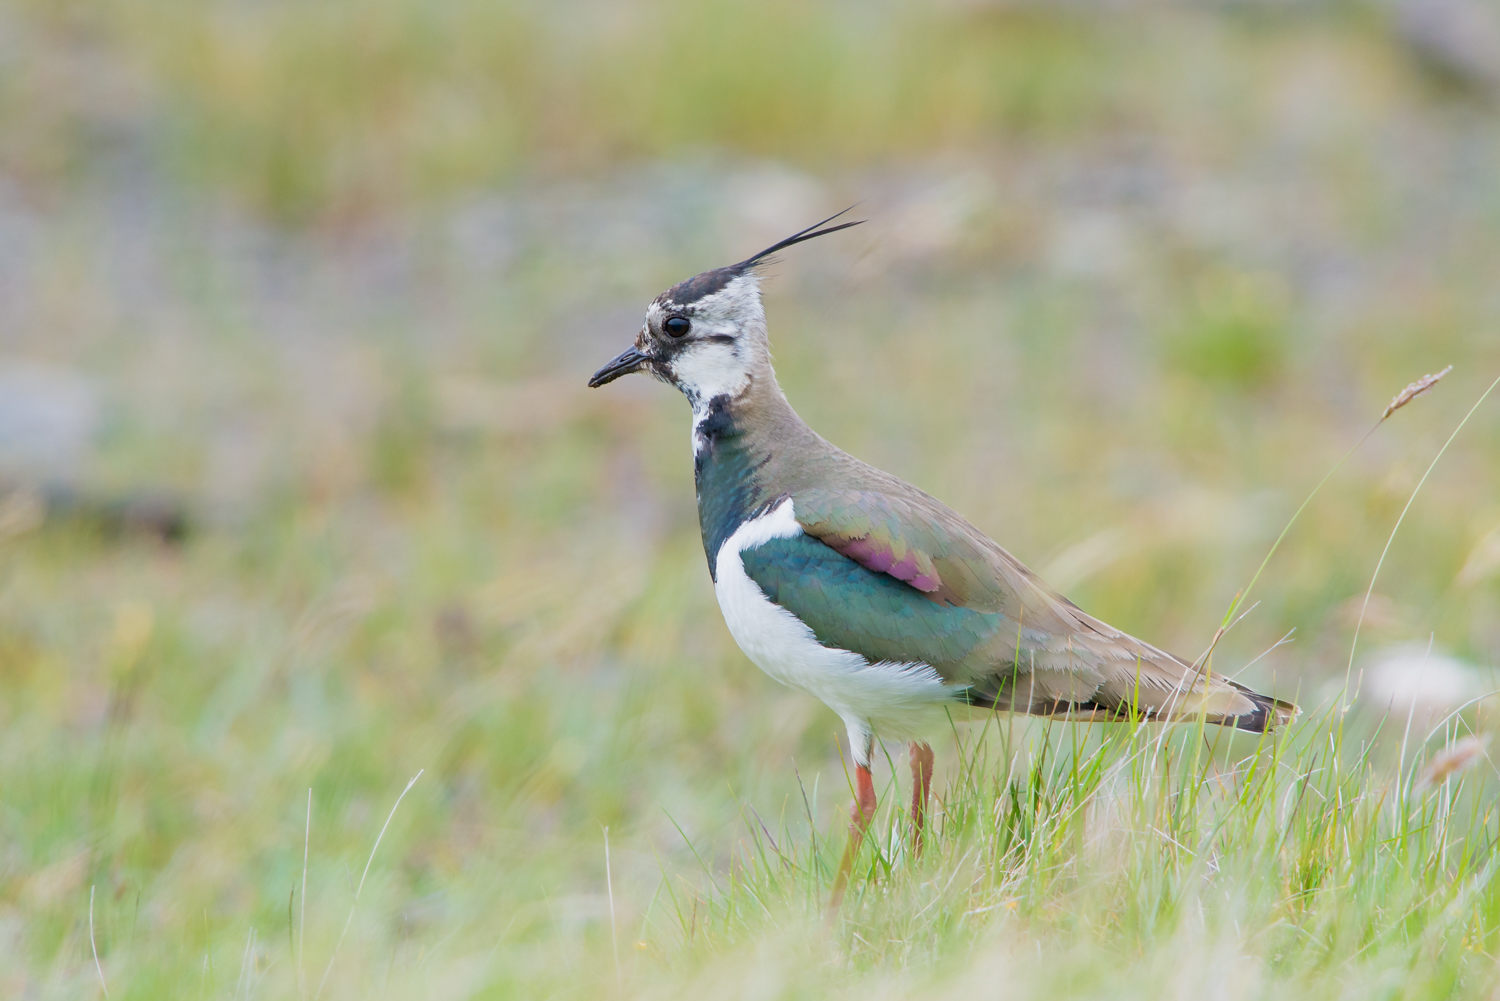 Northen Lapwing, British birds, wildlife